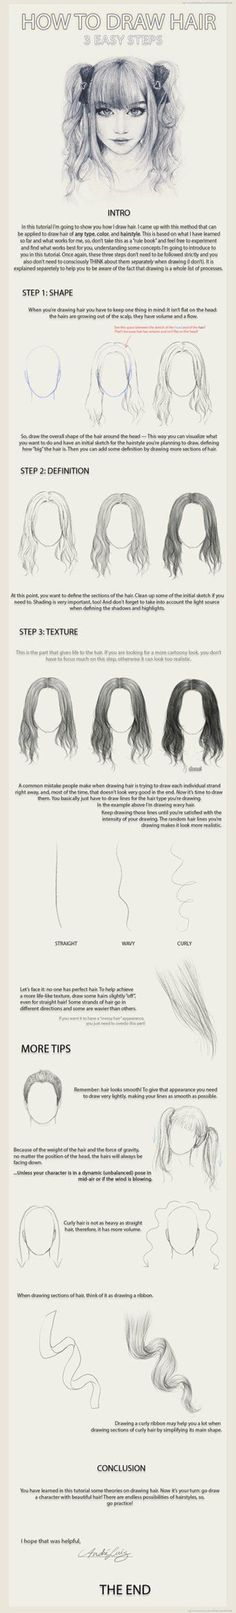 Let's learn how to draw hair step by step image guides . You not only need to concentrate on the details but also work at adding depth to the drawing.